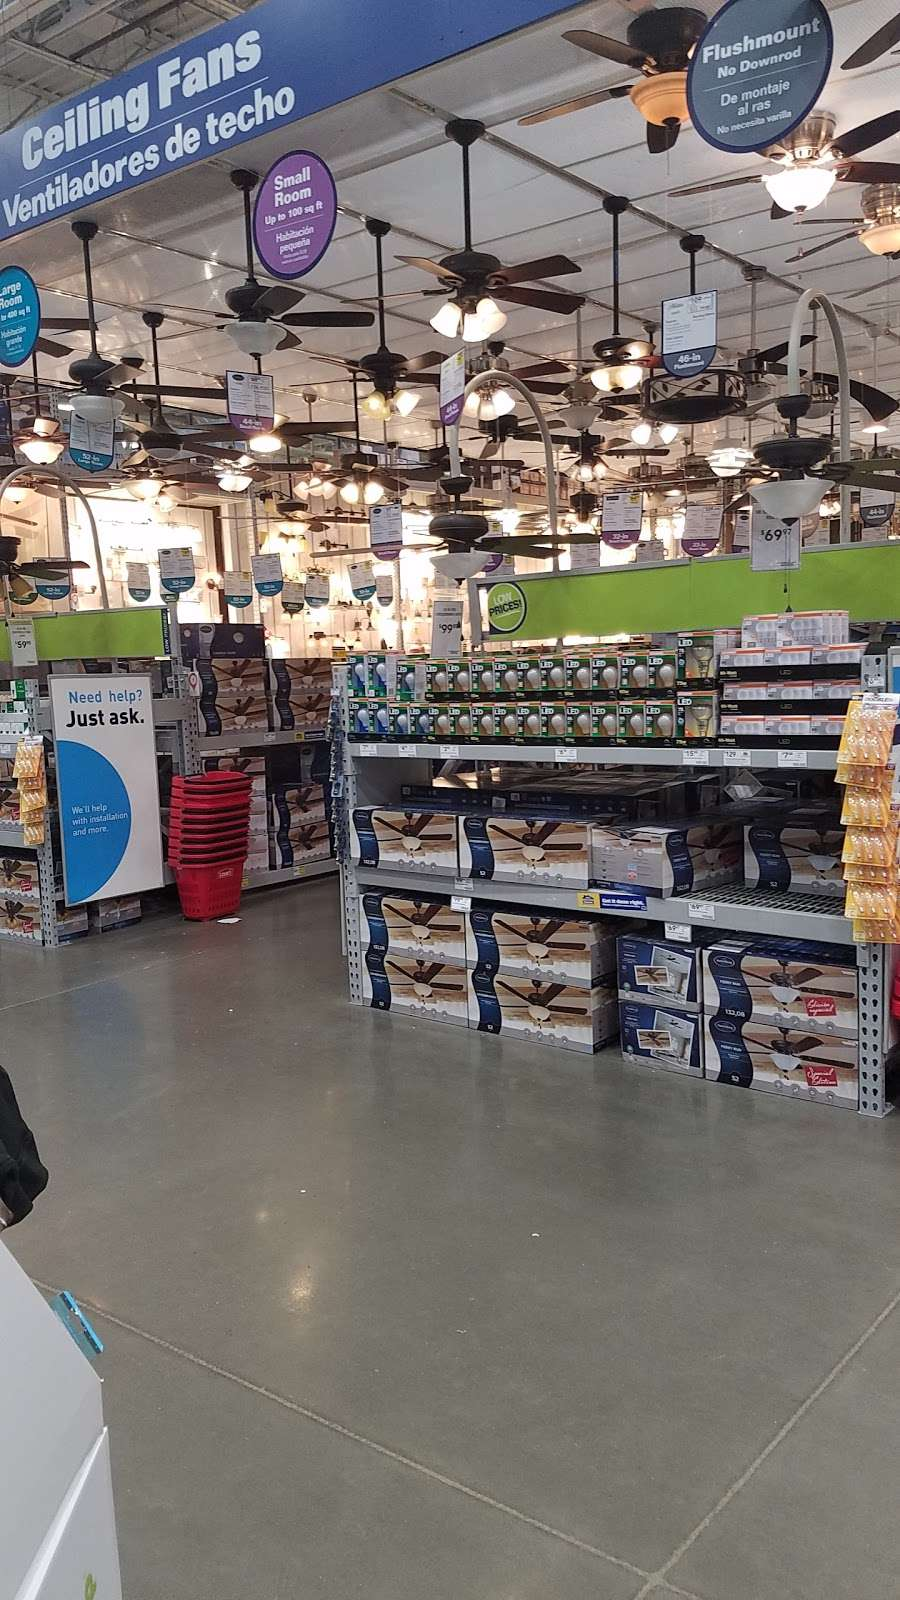 Lowes Home Improvement - hardware store  | Photo 6 of 9 | Address: 1751 E Monte Vista Ave, Vacaville, CA 95688, USA | Phone: (707) 455-4400